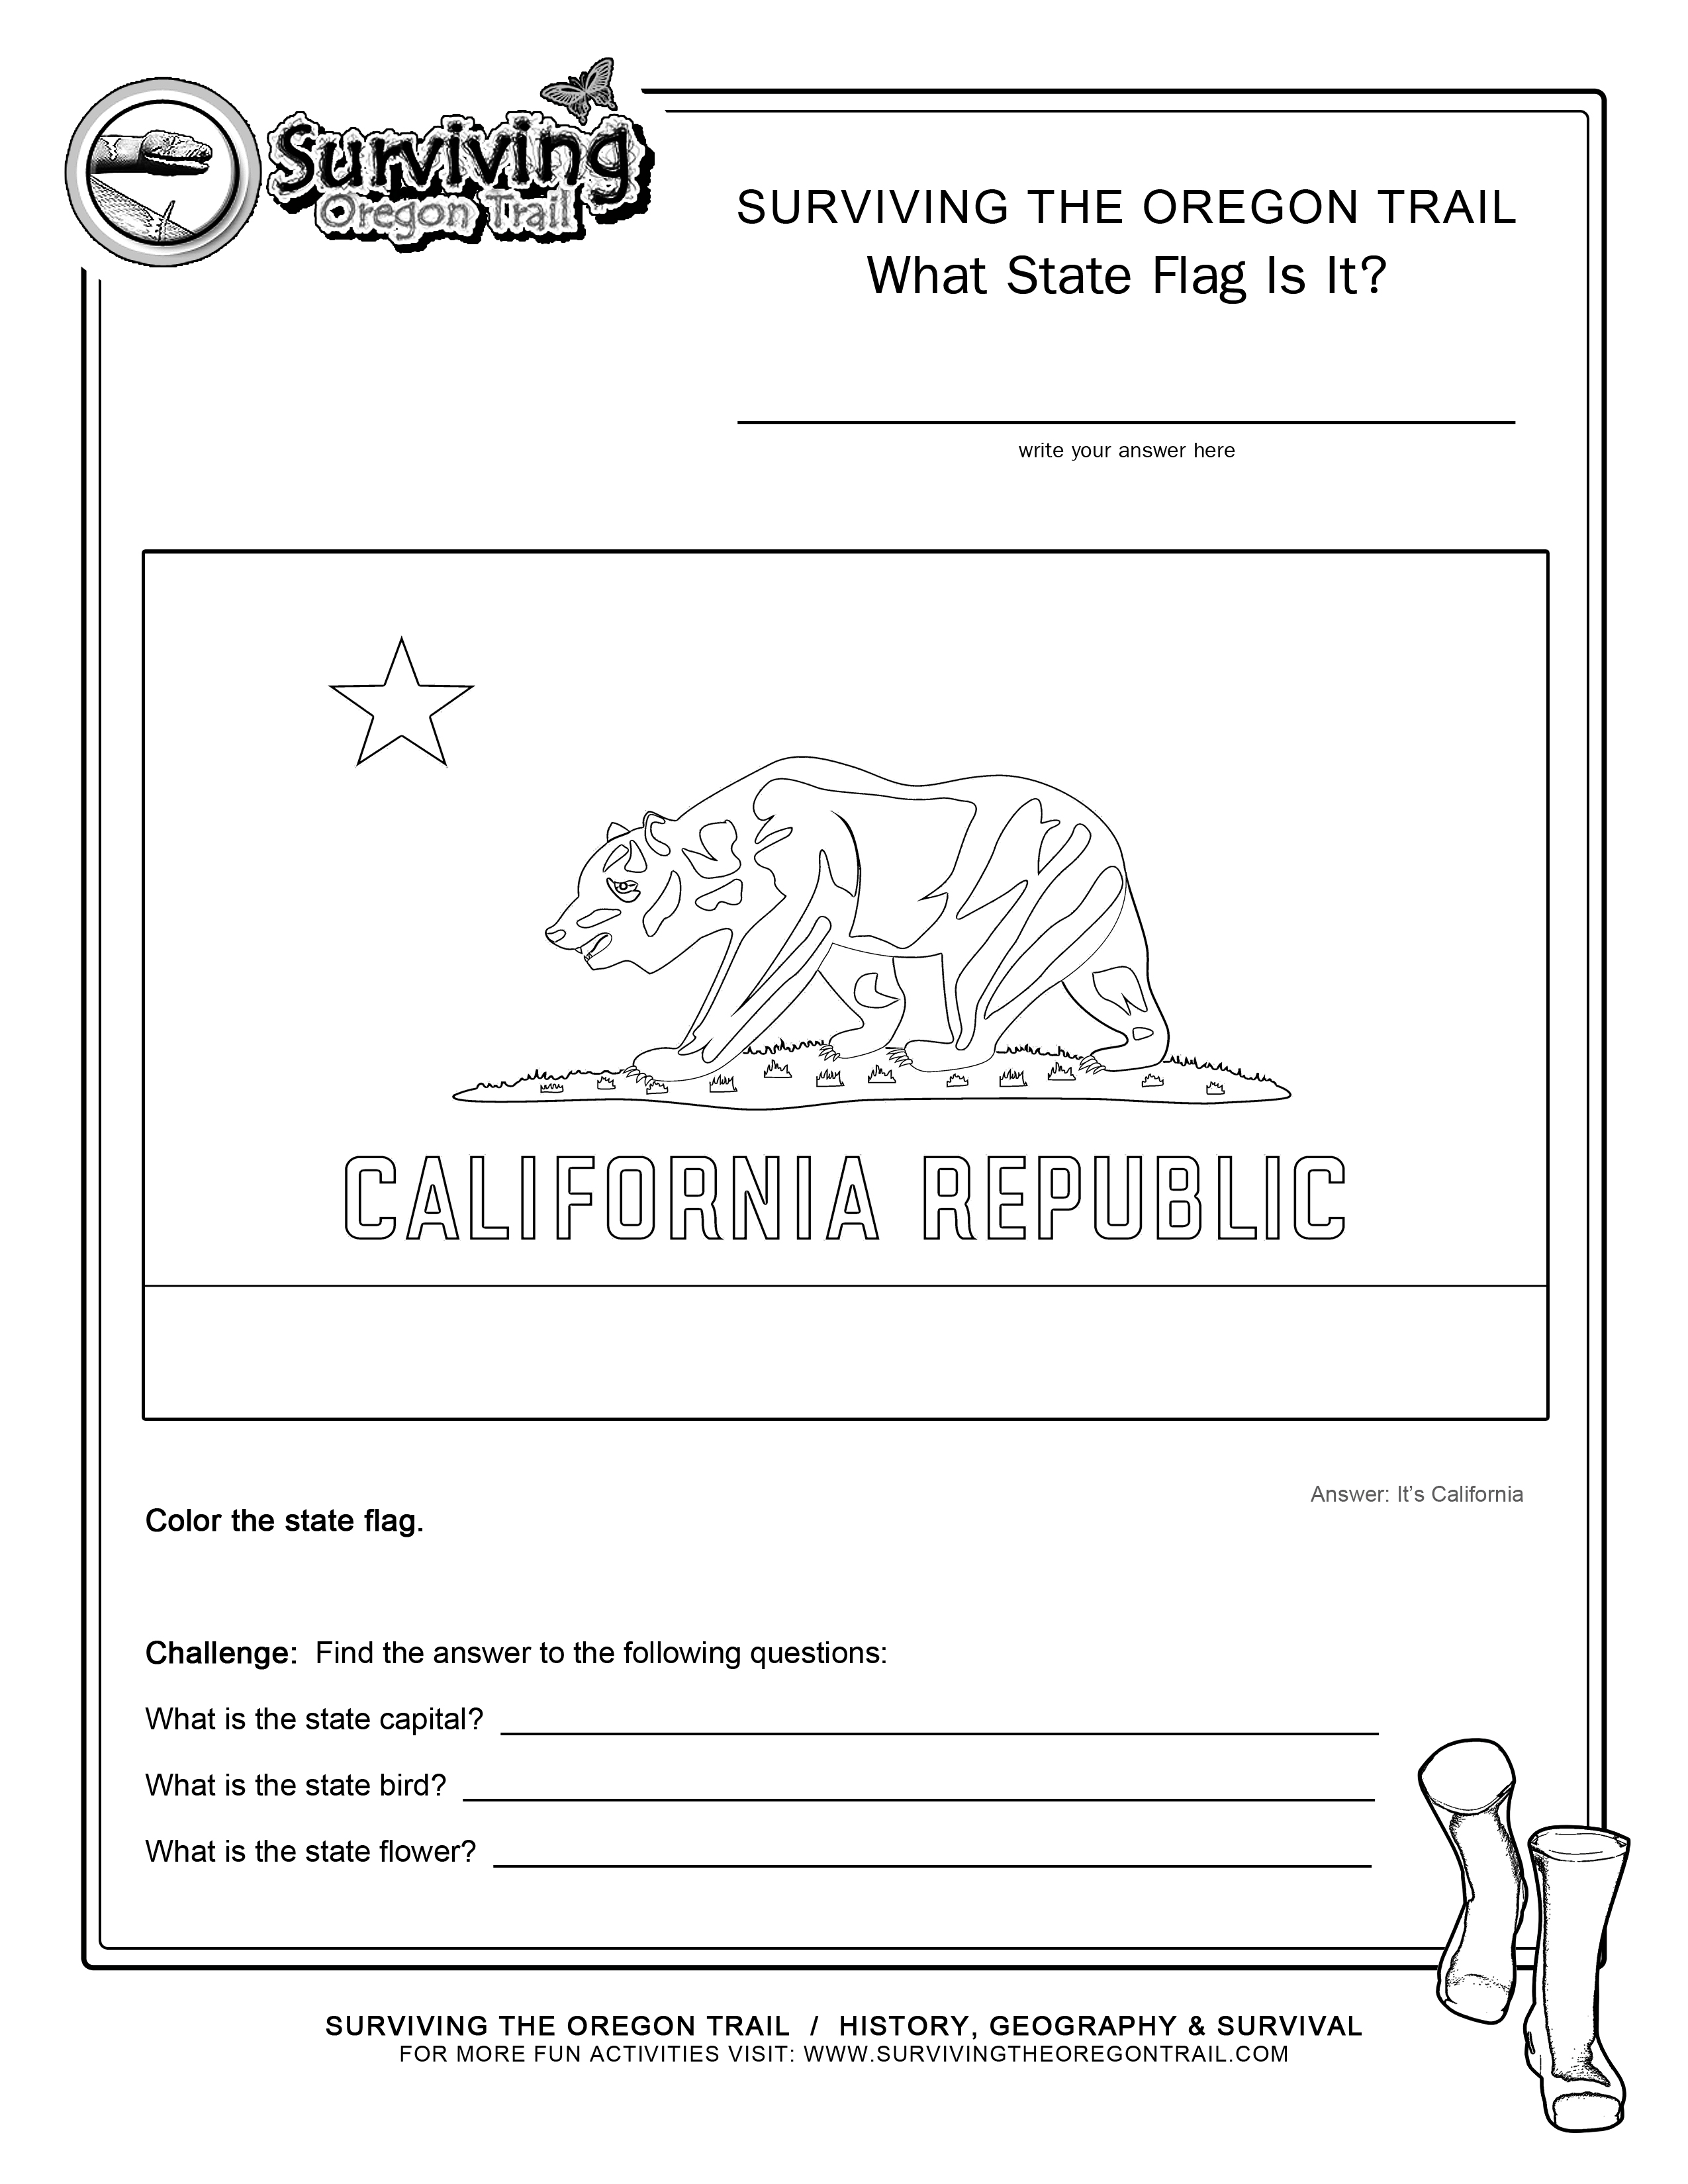 printable map of california for kids united states state emblems printables american history map kids of for printable california